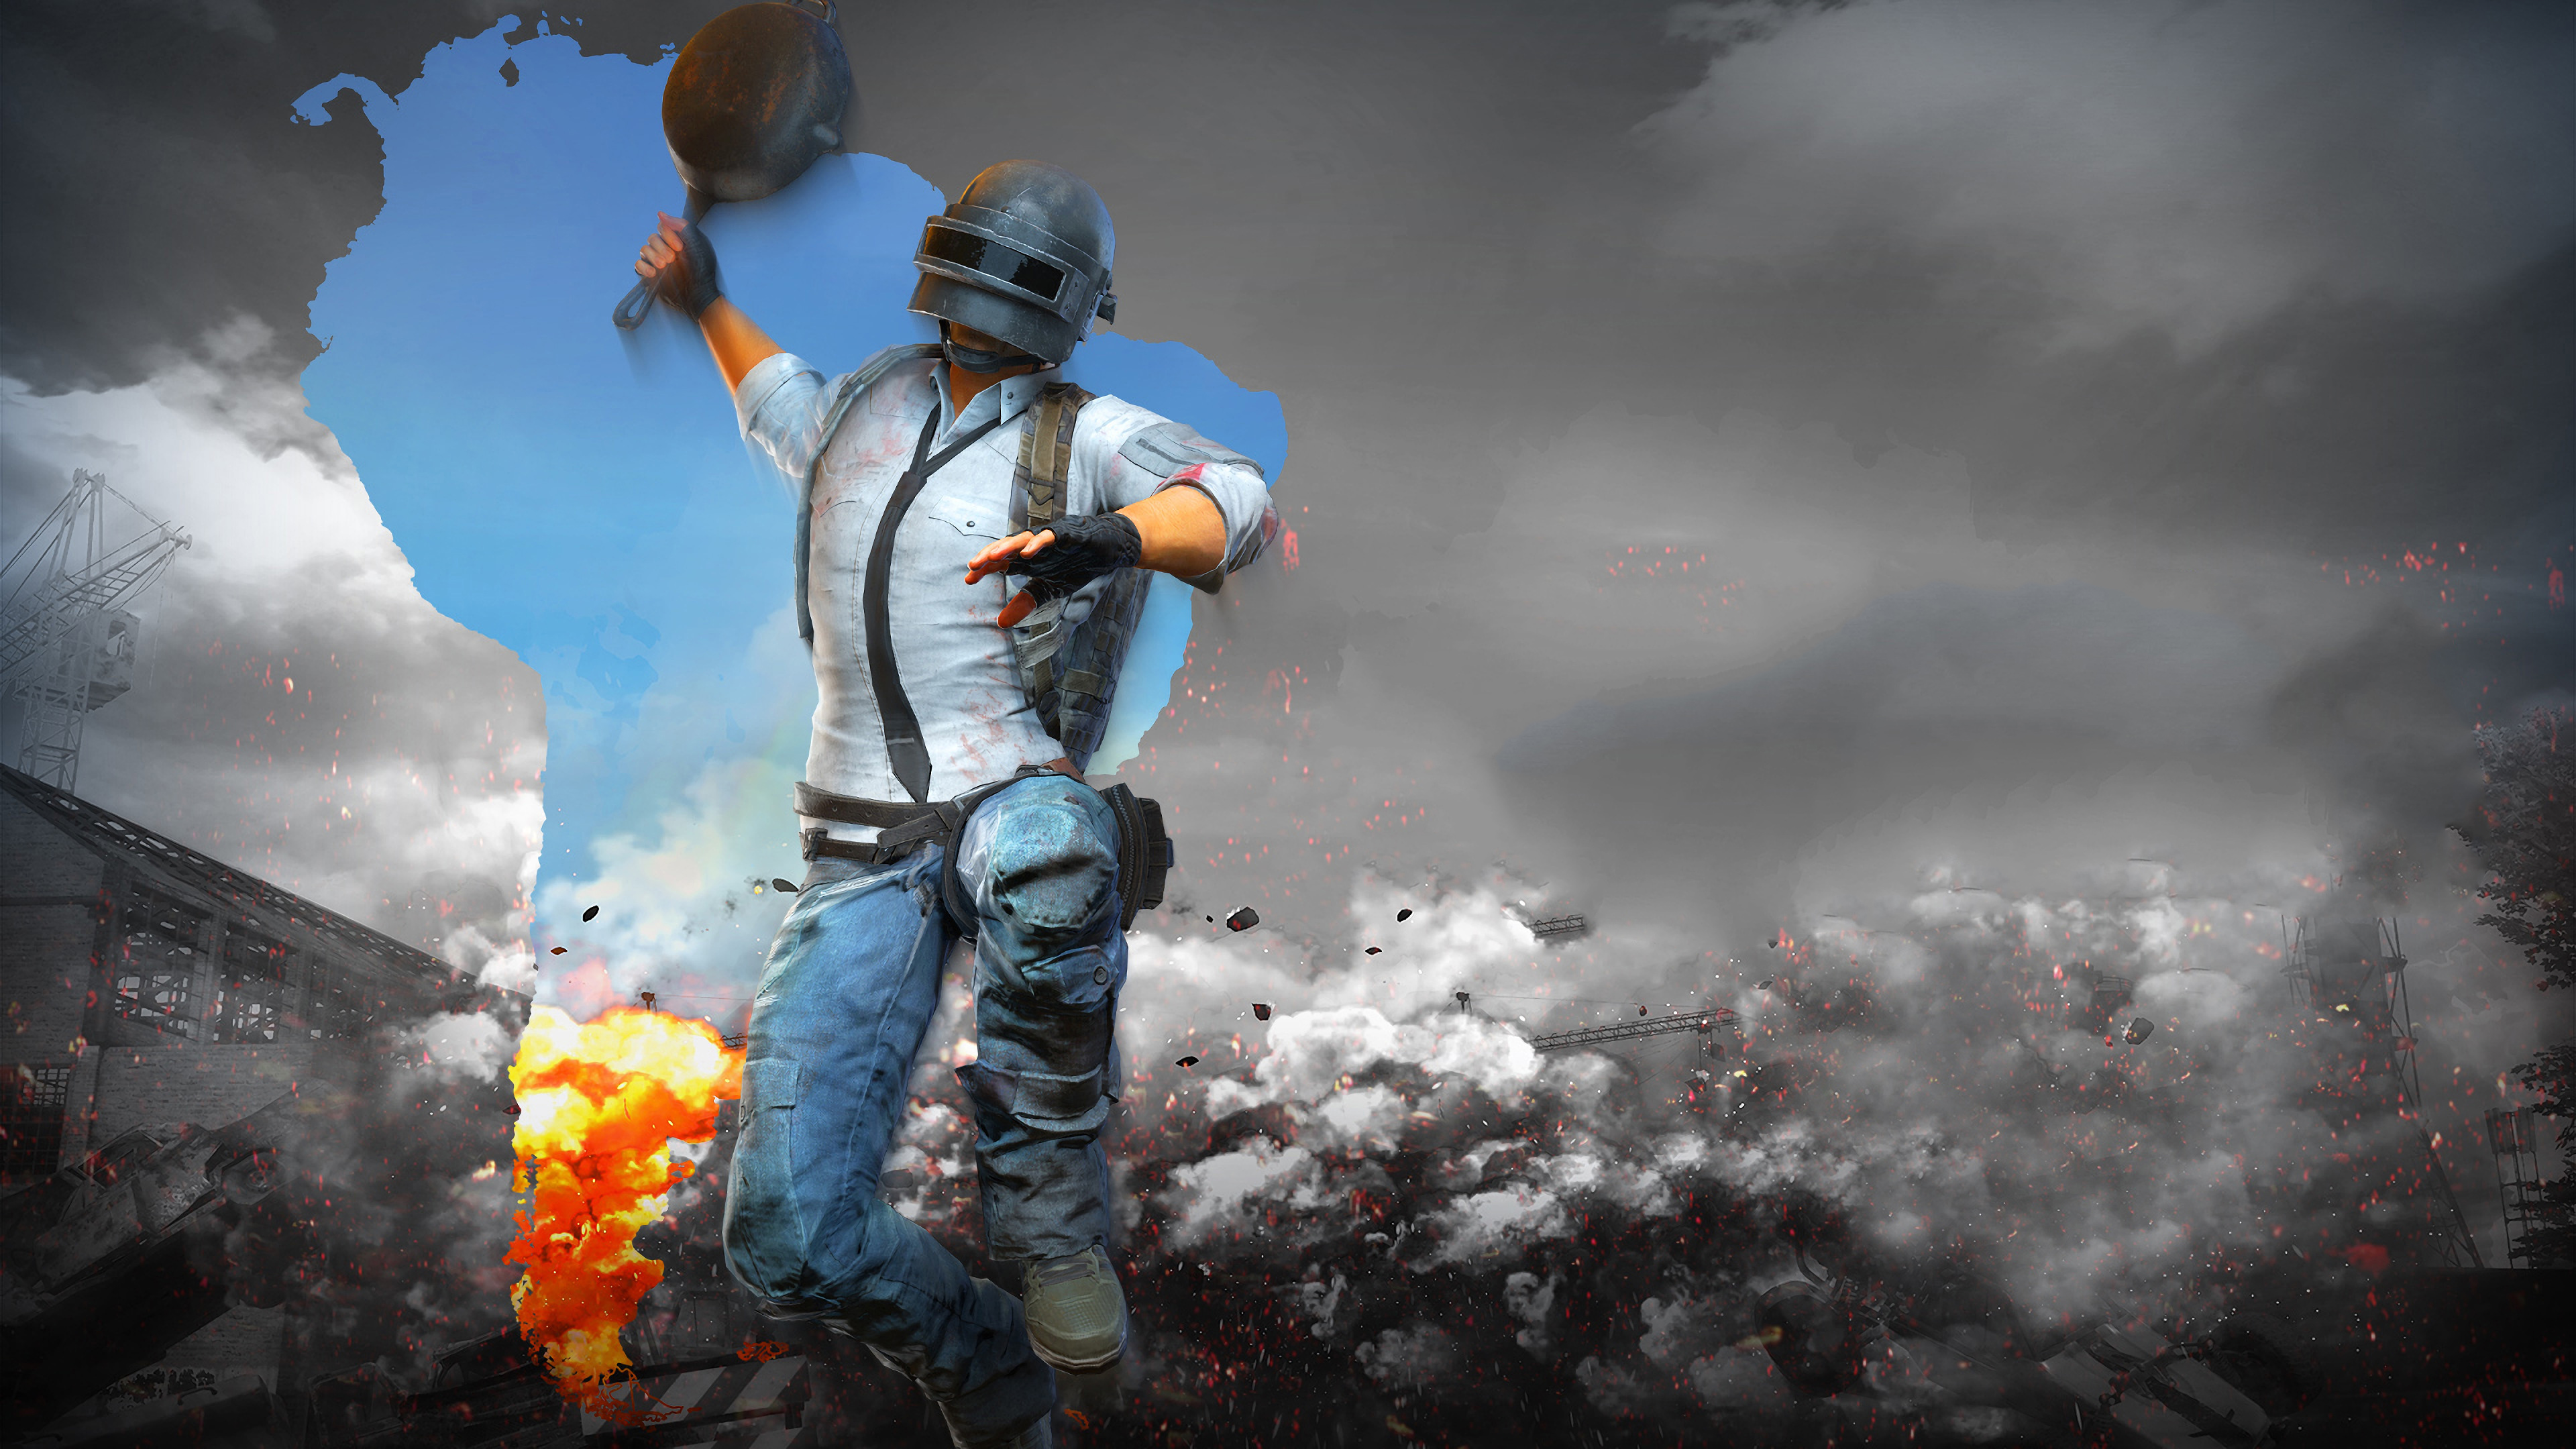 Pubg Ultra Hd Pc: PUBG Helmet Man With Pan 4k, HD Games, 4k Wallpapers